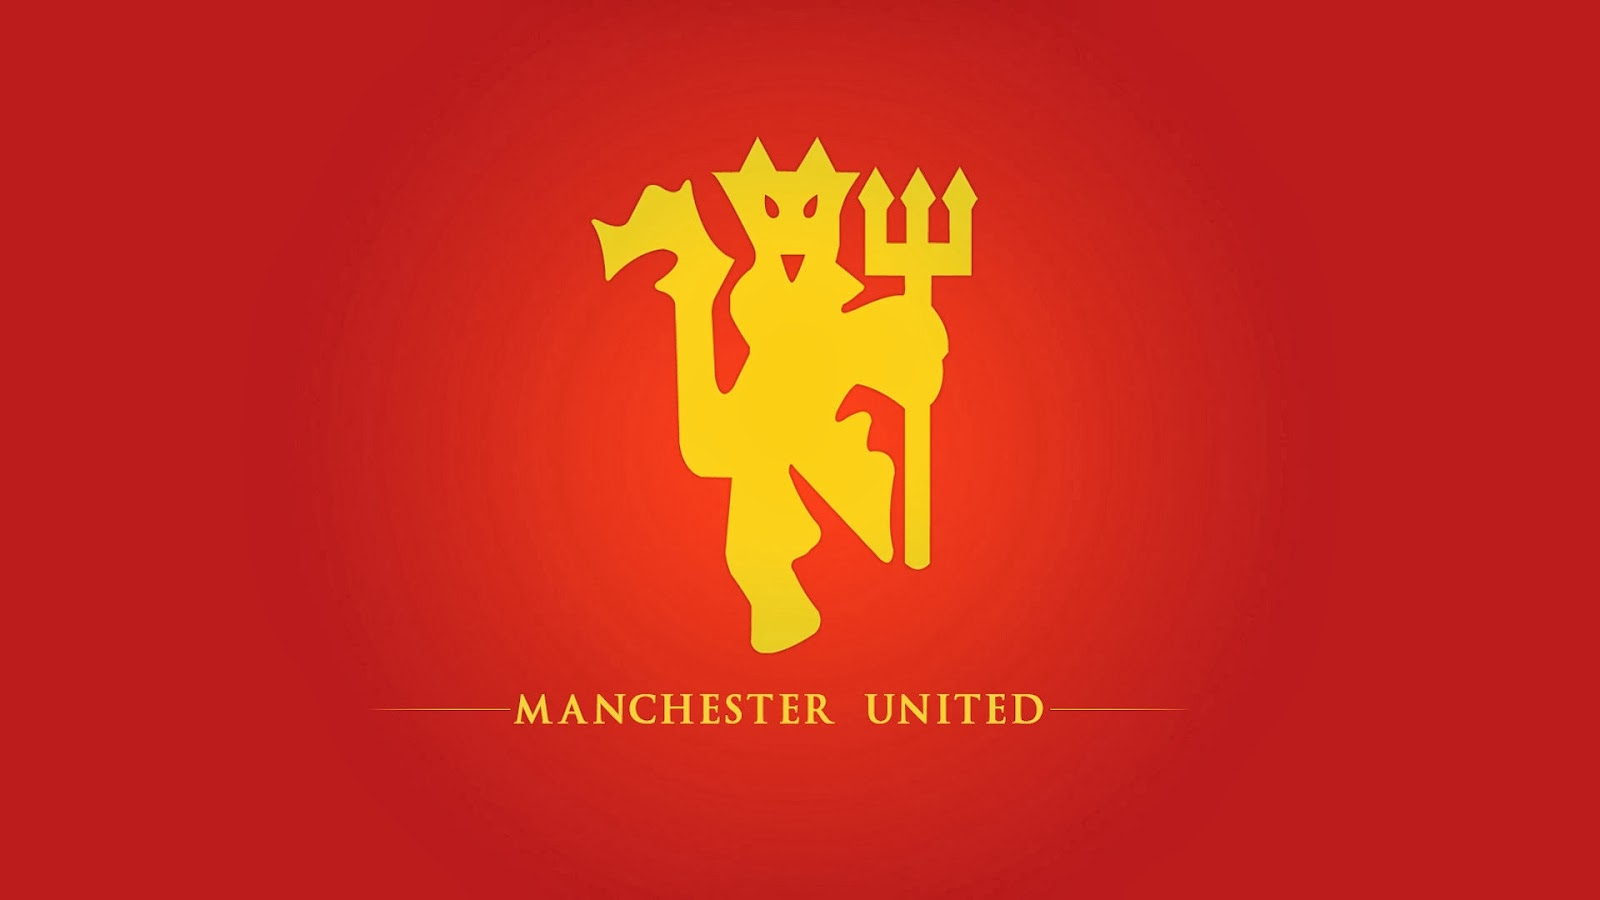 Fc manchester united 1080p hd wallpapers fc manchester united hd wallpaper voltagebd Choice Image